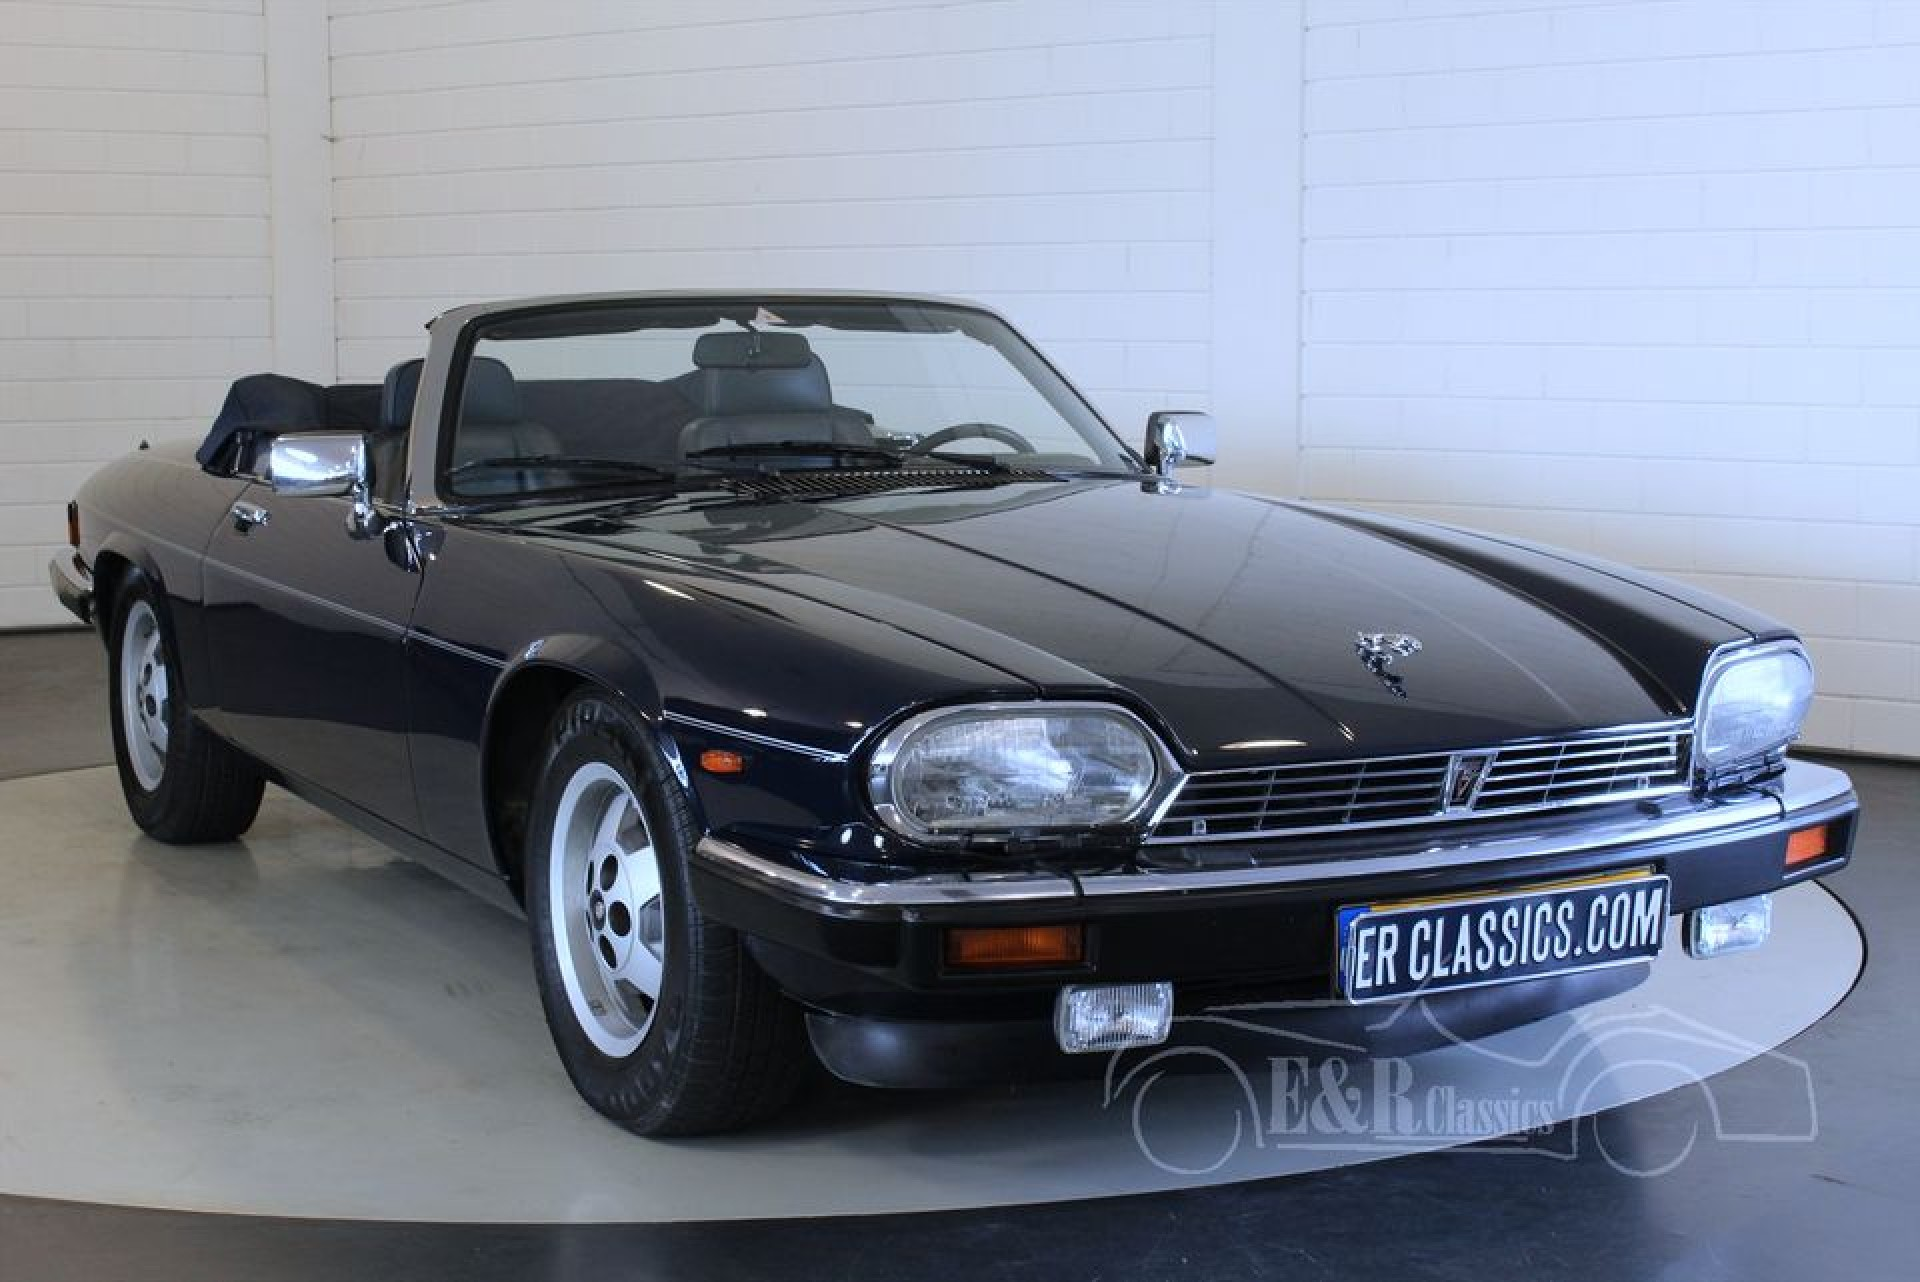 jaguar xjs cabriolet 1989 vendre erclassics. Black Bedroom Furniture Sets. Home Design Ideas